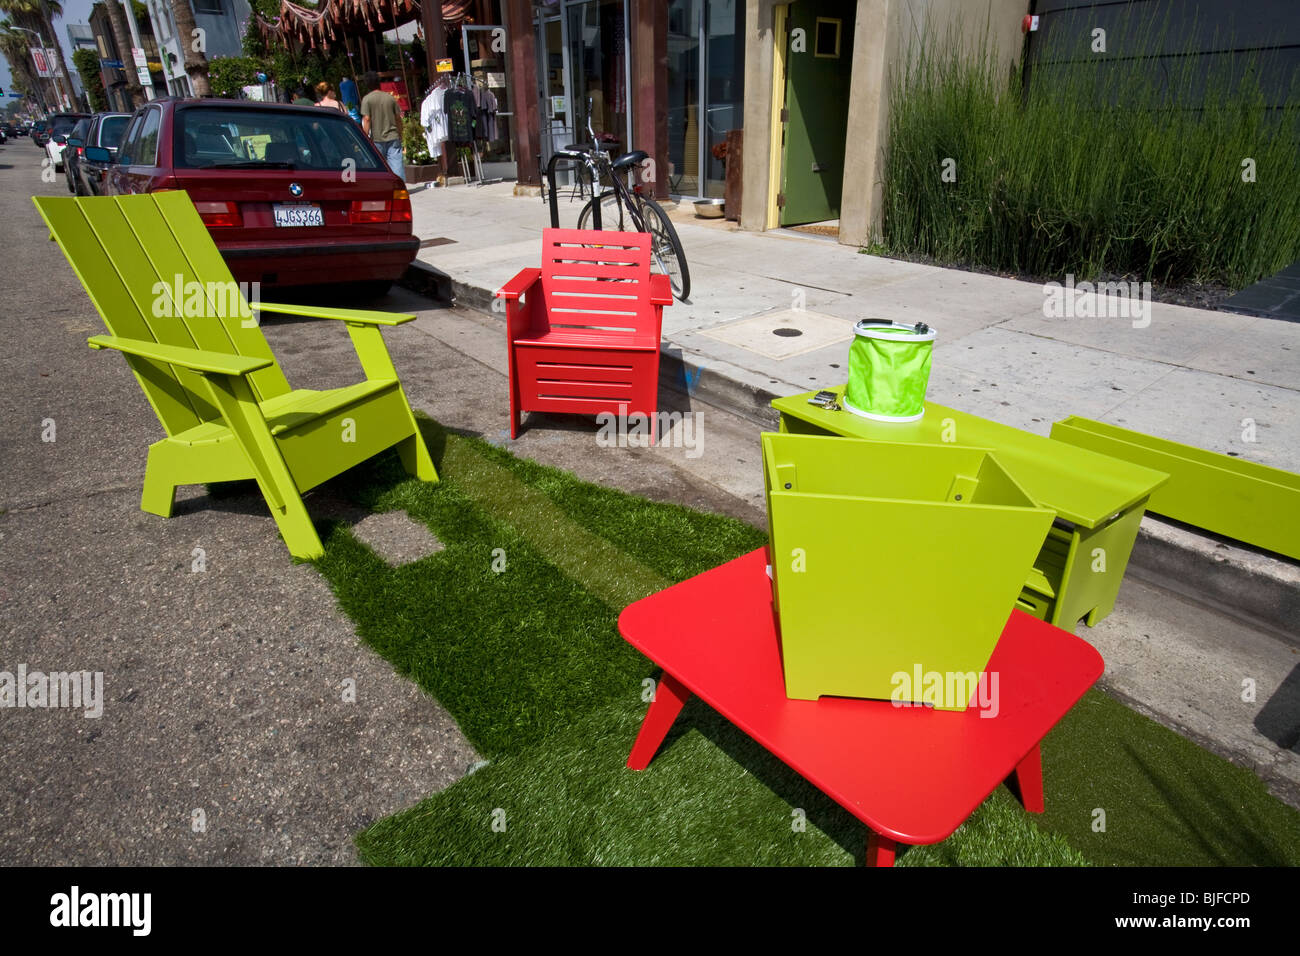 Recycled plastic outdoor furniture by Loll Designs, made from recycled high  density polyethylene (HDPE - Outdoor Furniture Stock Photos & Outdoor Furniture Stock Images - Alamy